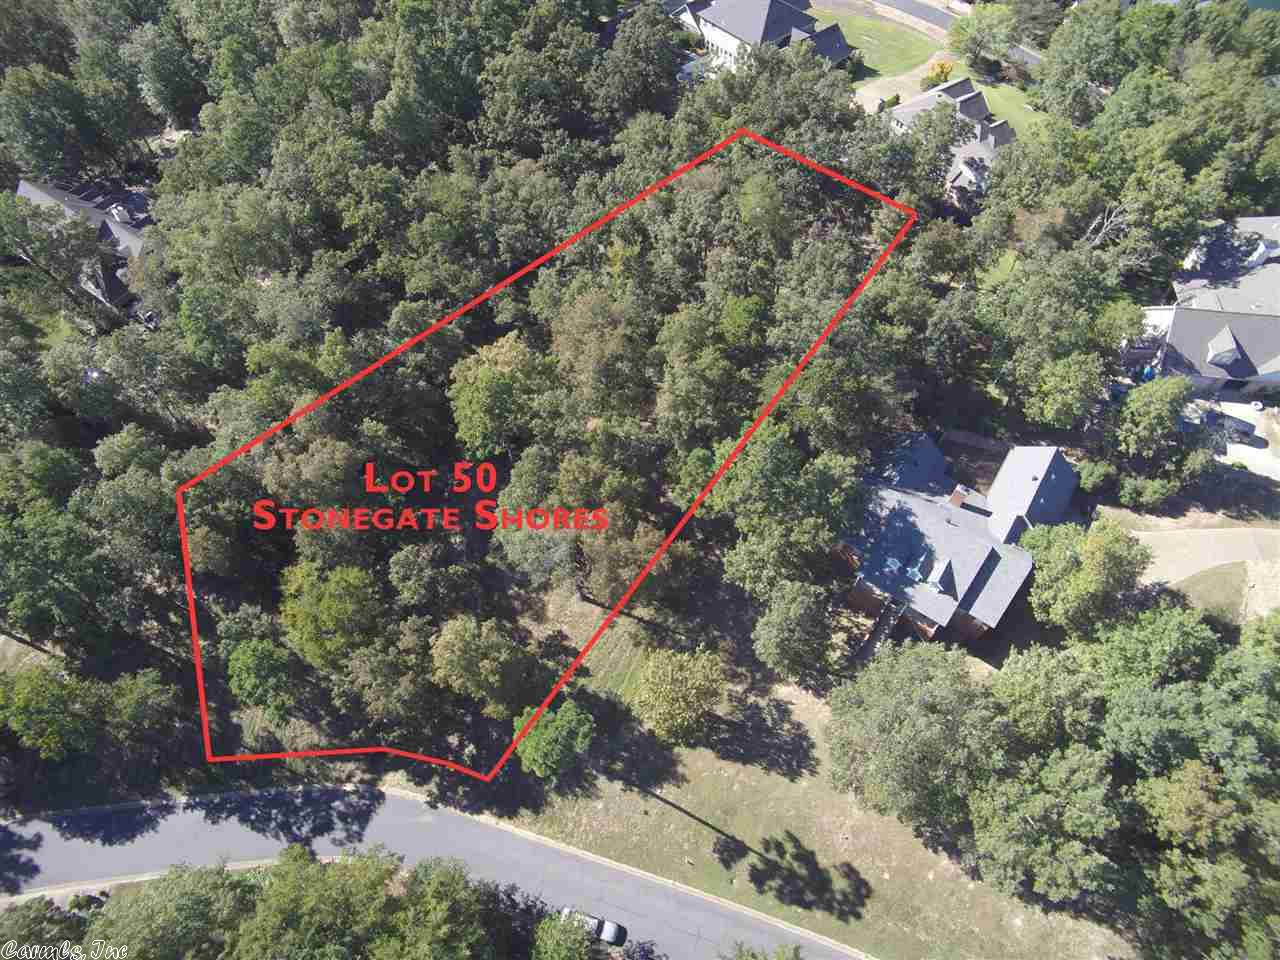 Lot 50 Stonegate Shores Drive Hot Springs, AR 71913 - MLS #: 16029517